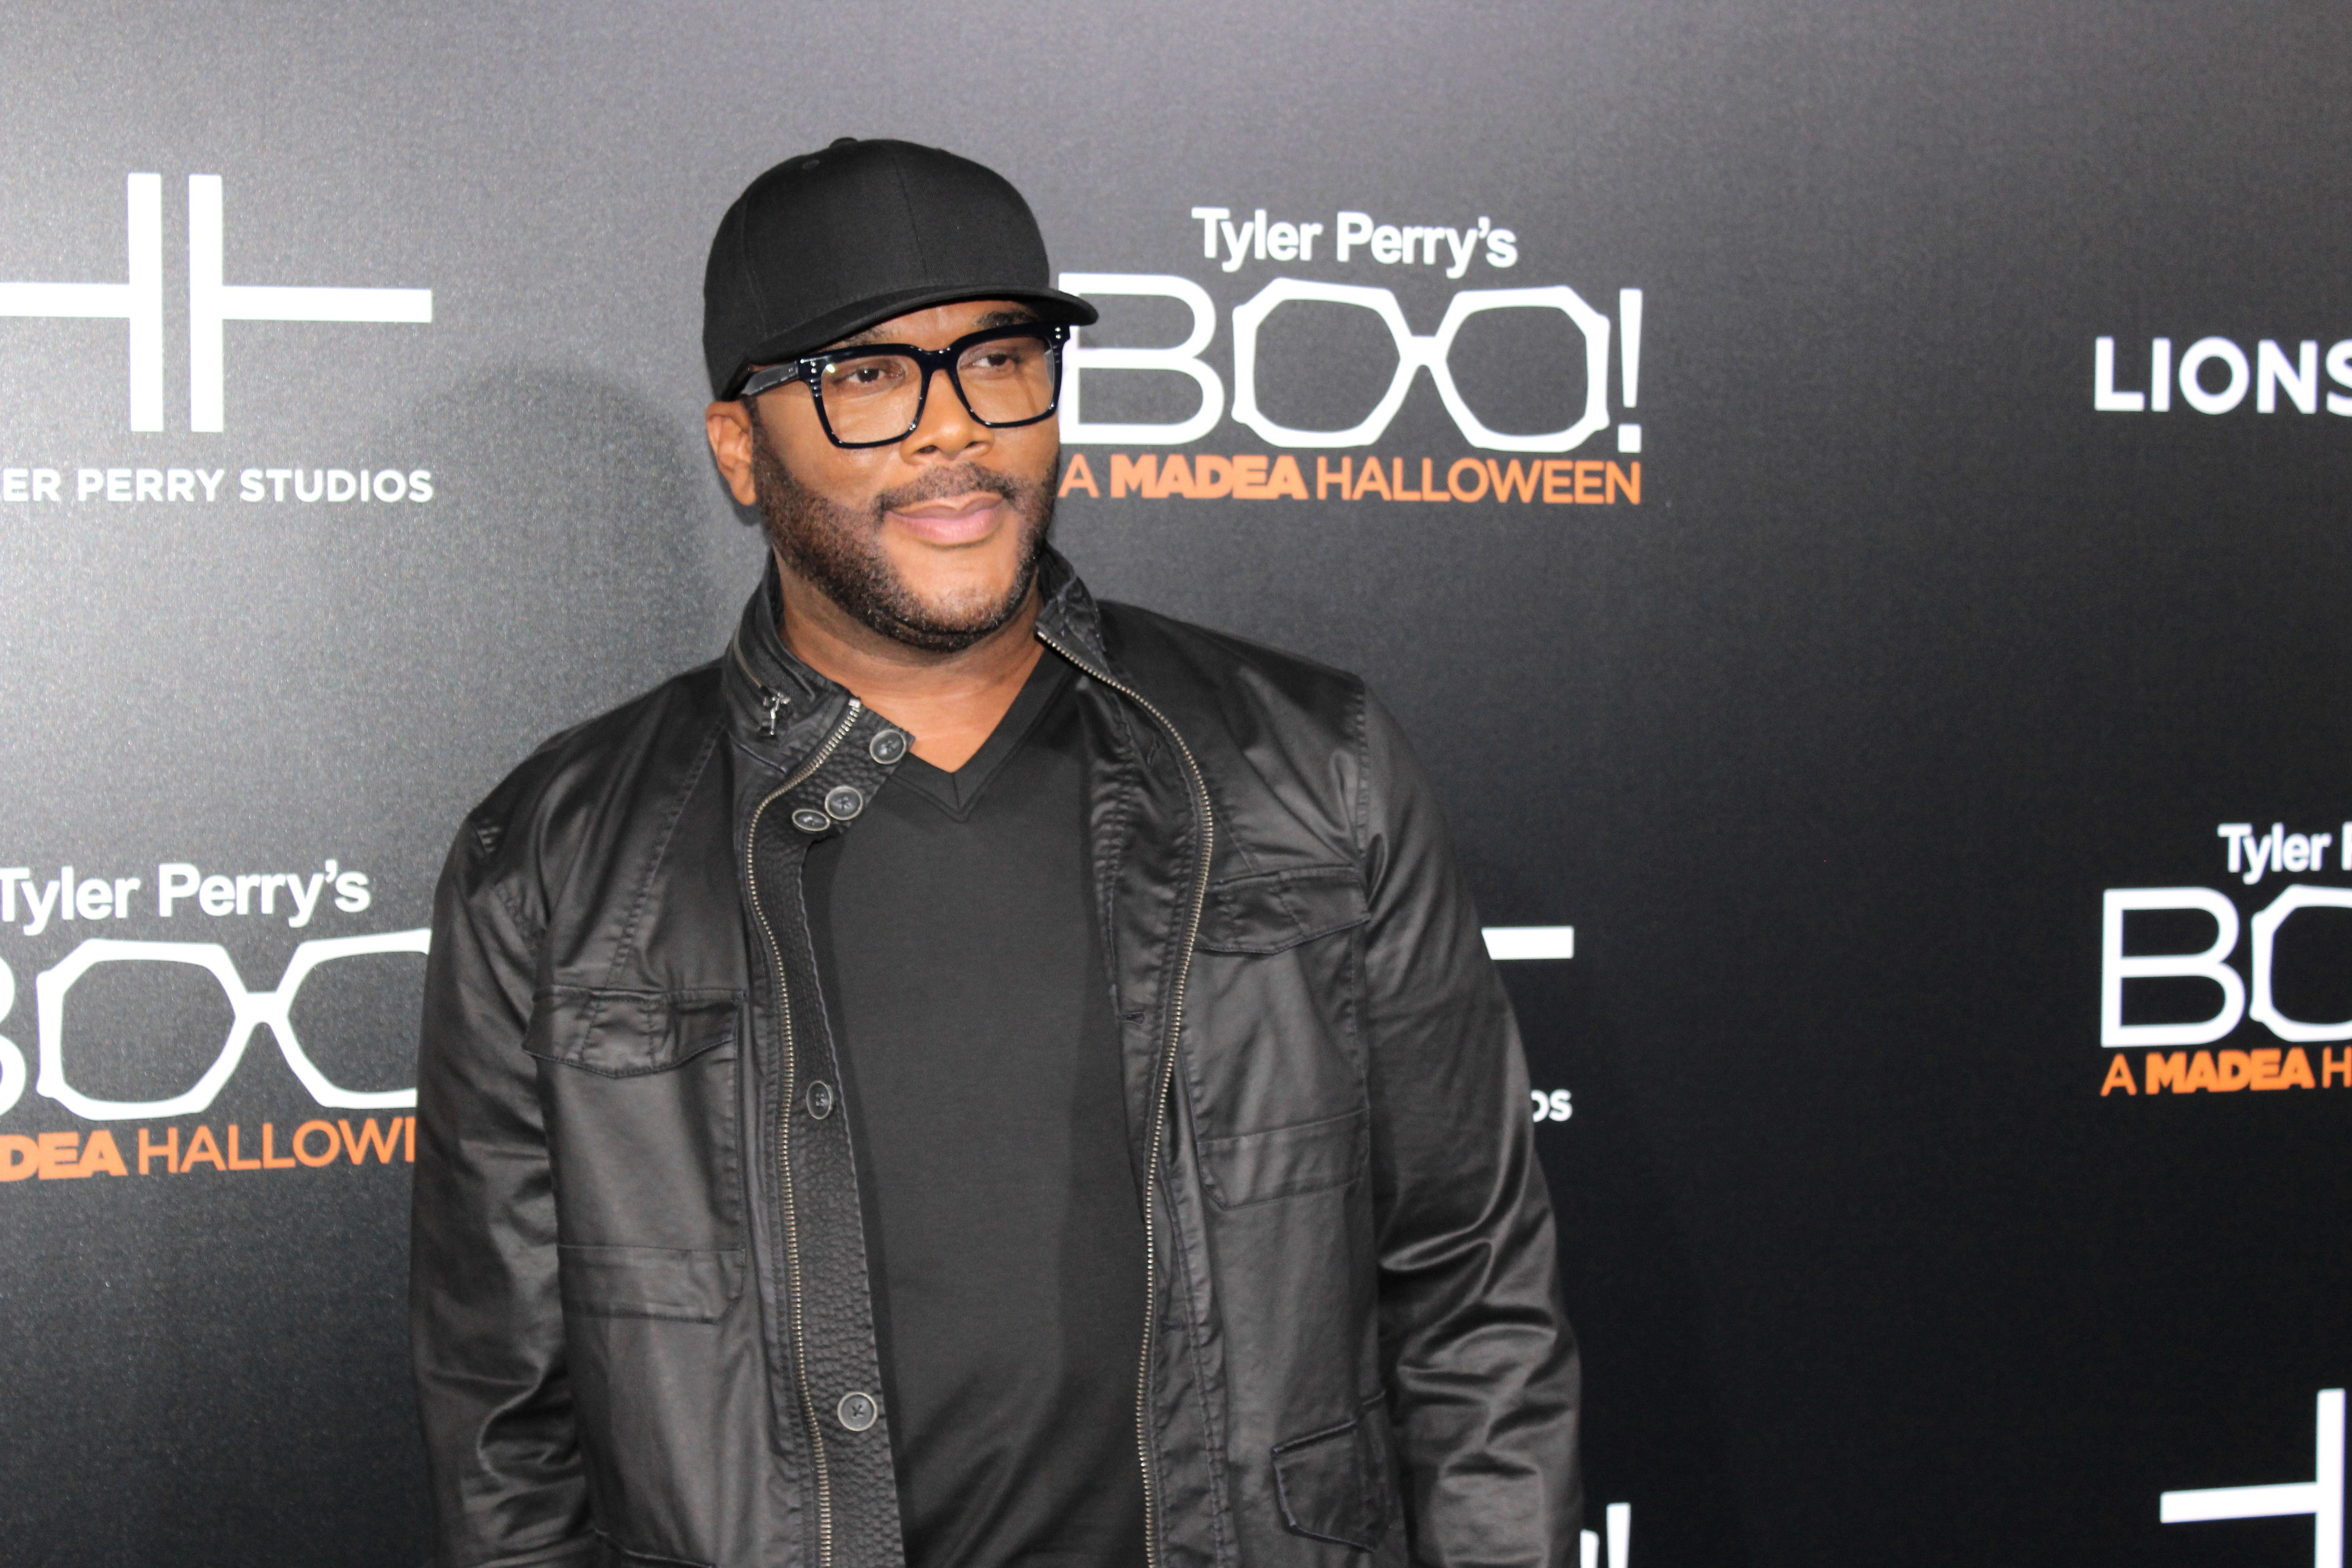 Tyler Perry's BOO! A Madea Halloween premiere hits the